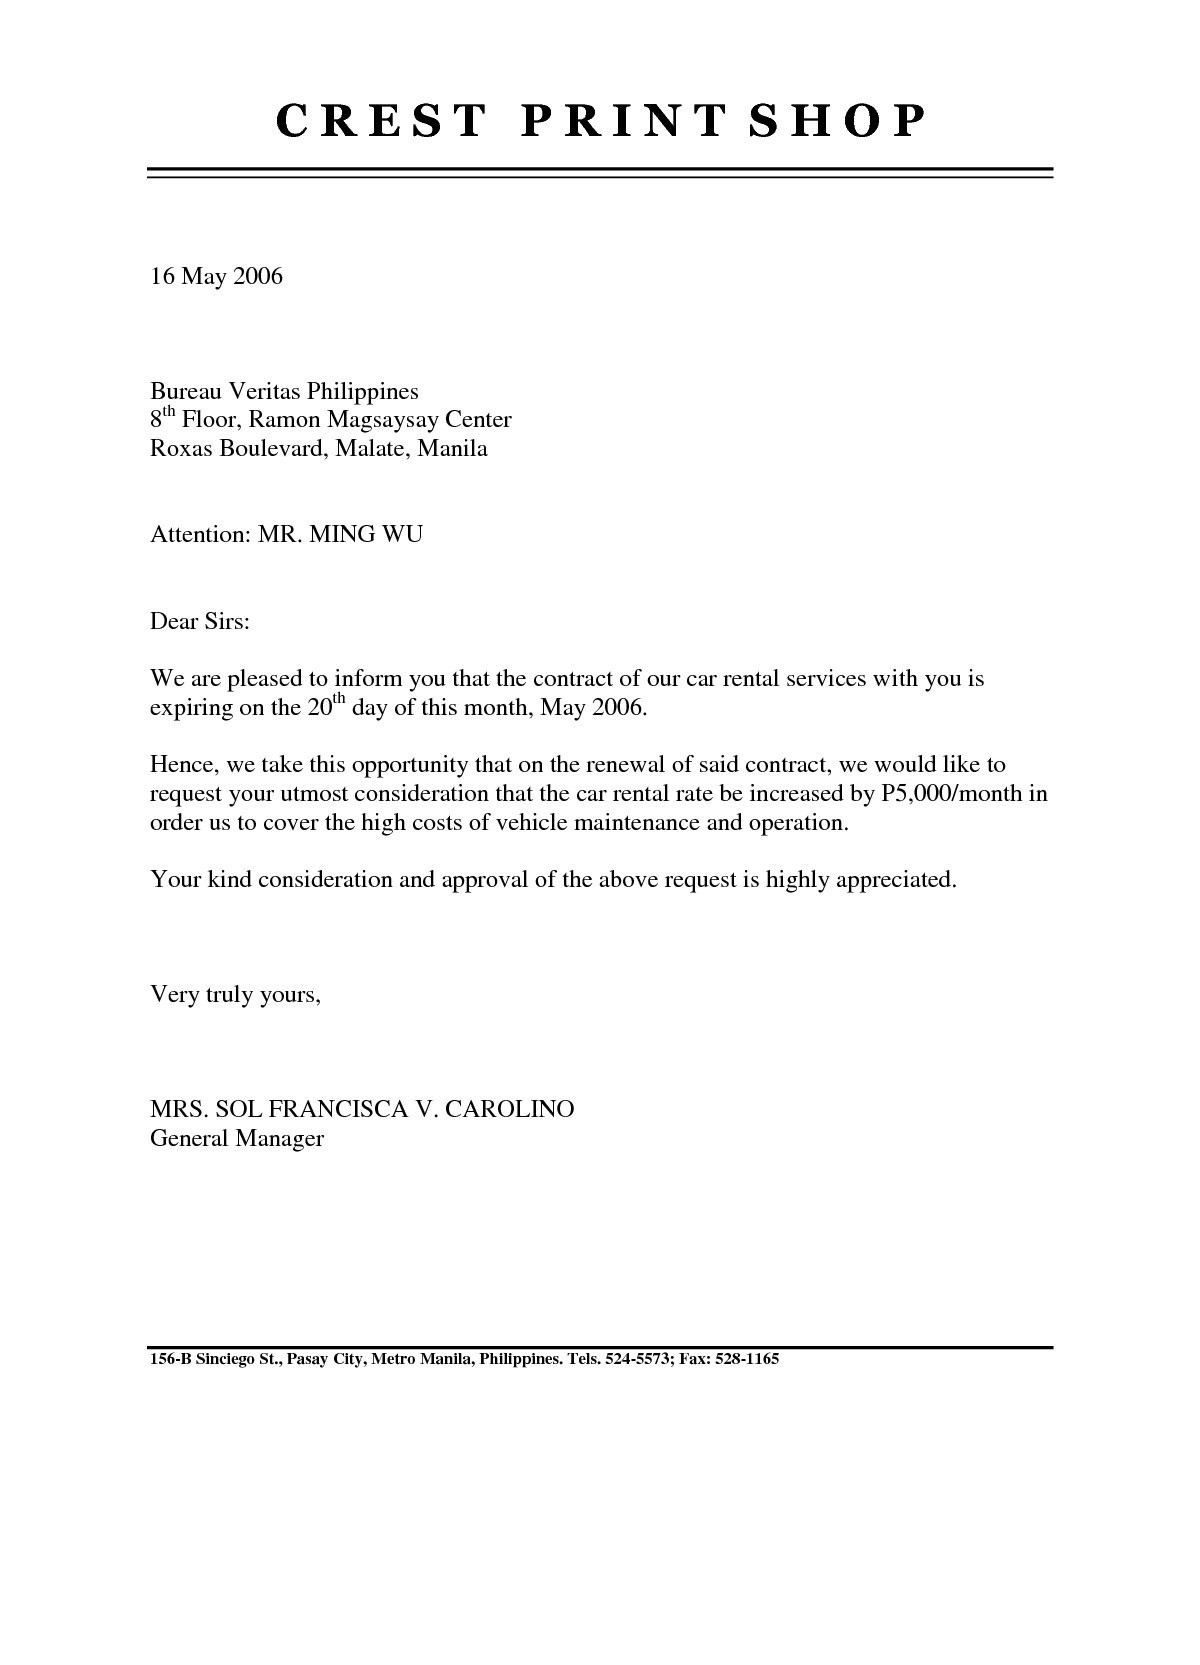 Mortgage Default Letter Template - How to Write A Cover Letter for A Rental Application